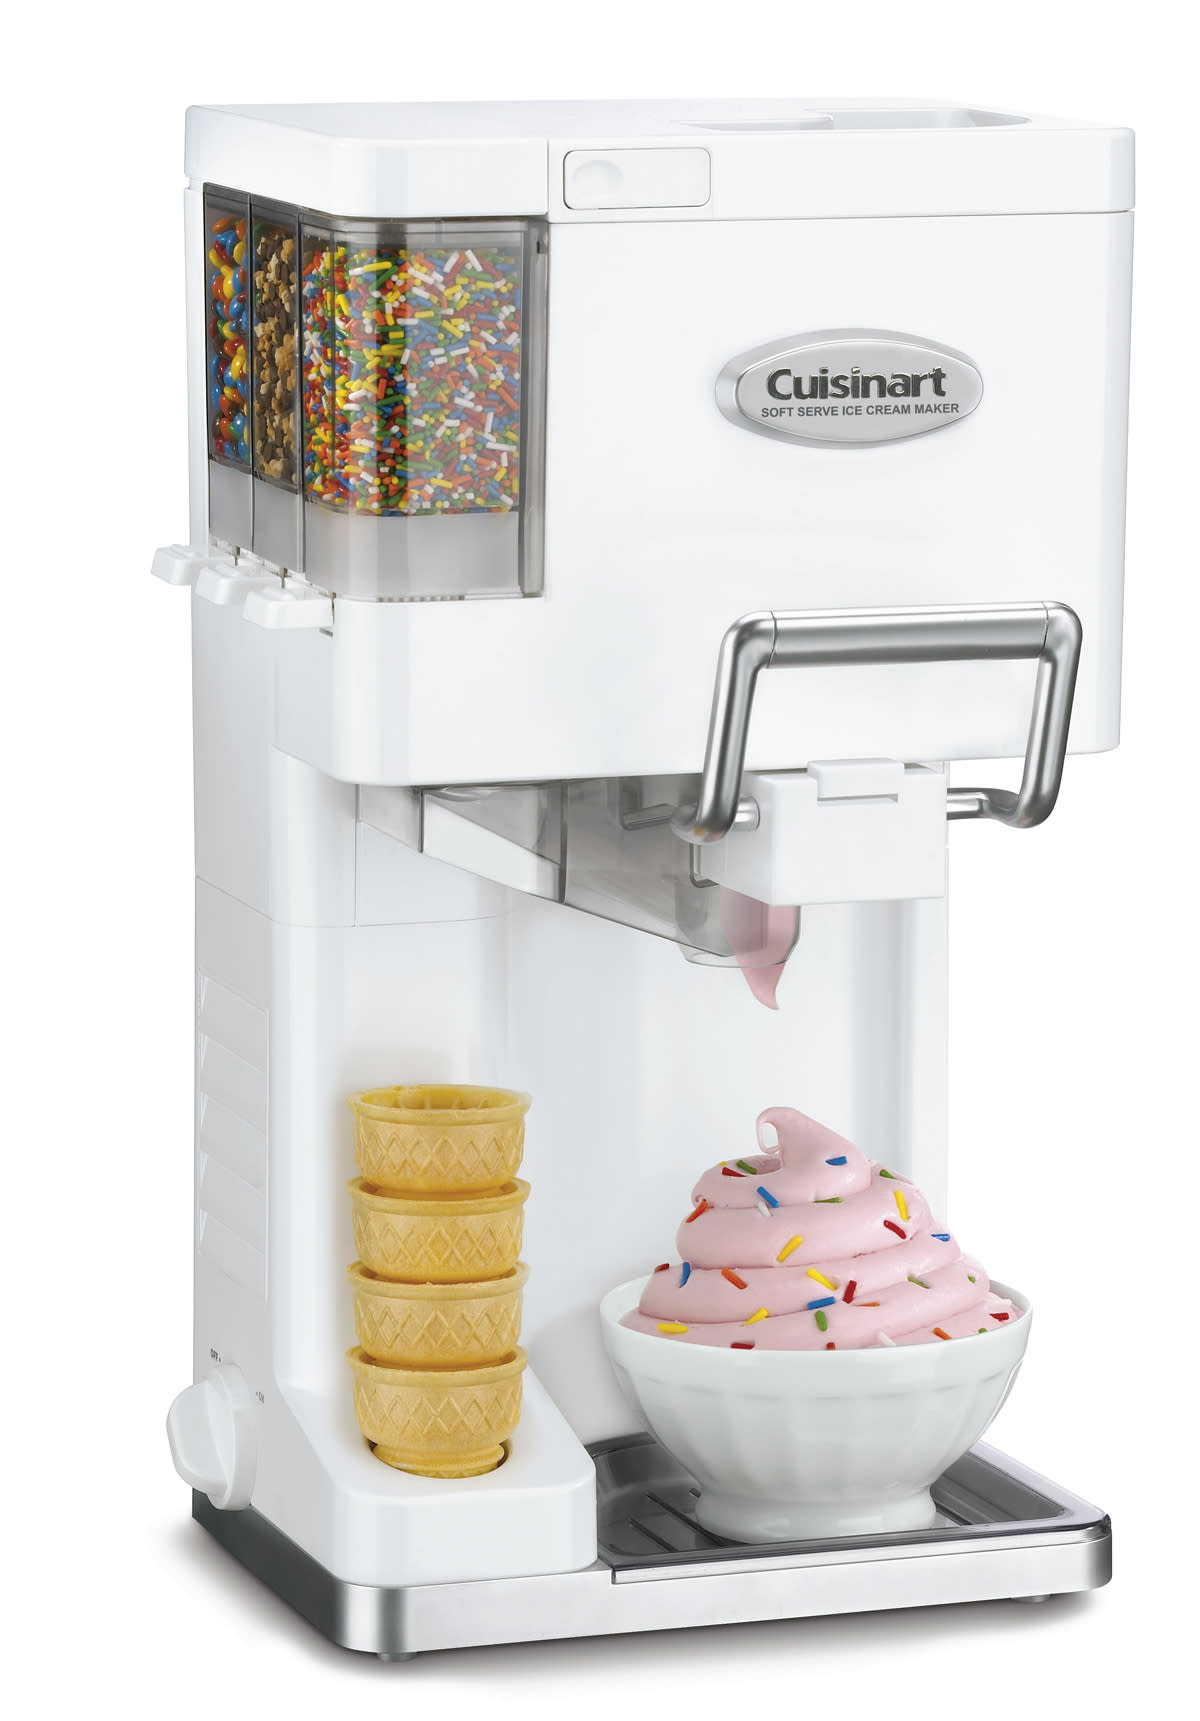 Cuisinart ICE-45P1 Soft Serve Ice Cream Maker (Walmart / Walmart)